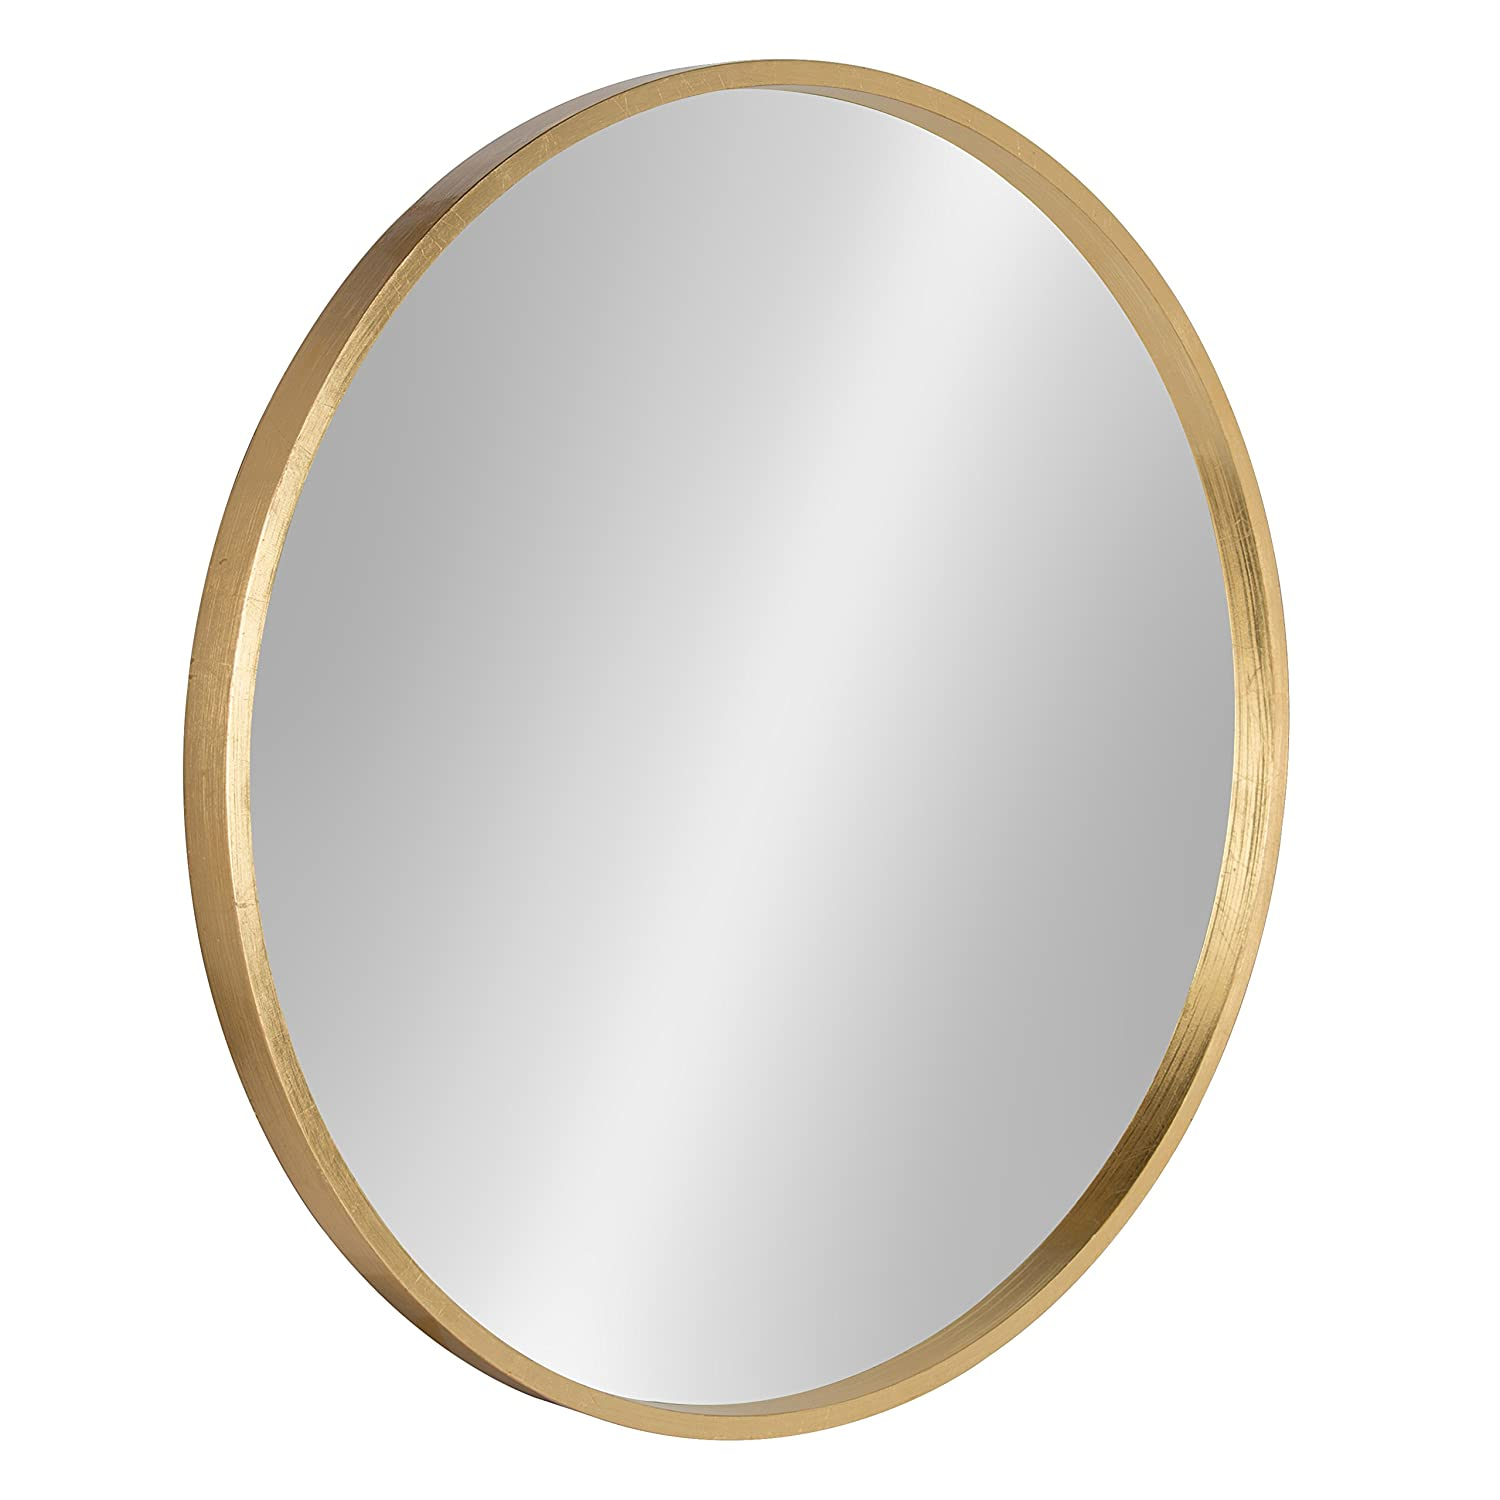 Kate and Laurel Travis Round Wood Accent Wall Mirror, 25.6 Diameter, Black 25.6 Diameter Uniek 213122